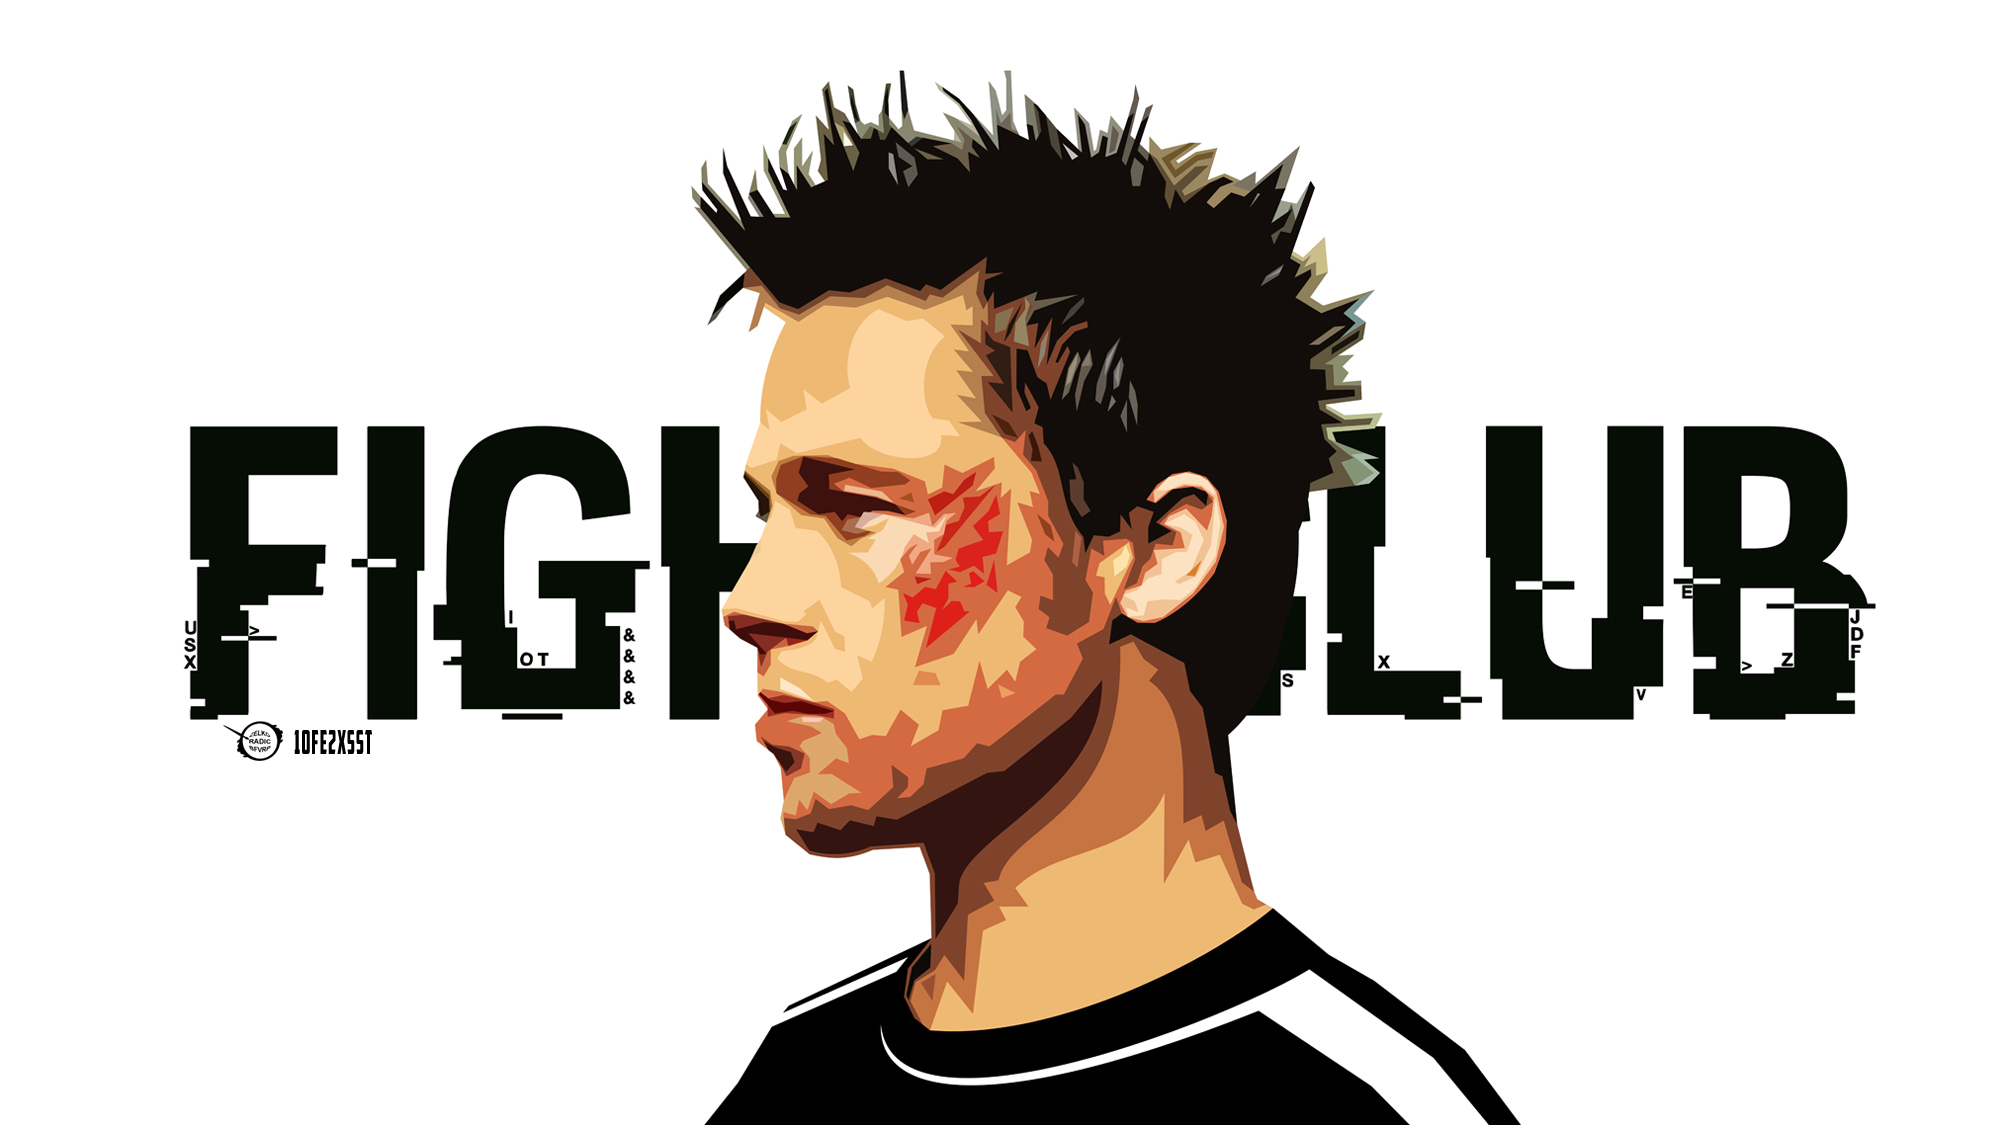 Fight Club Fondo De Pantalla Hd Fondo De Escritorio